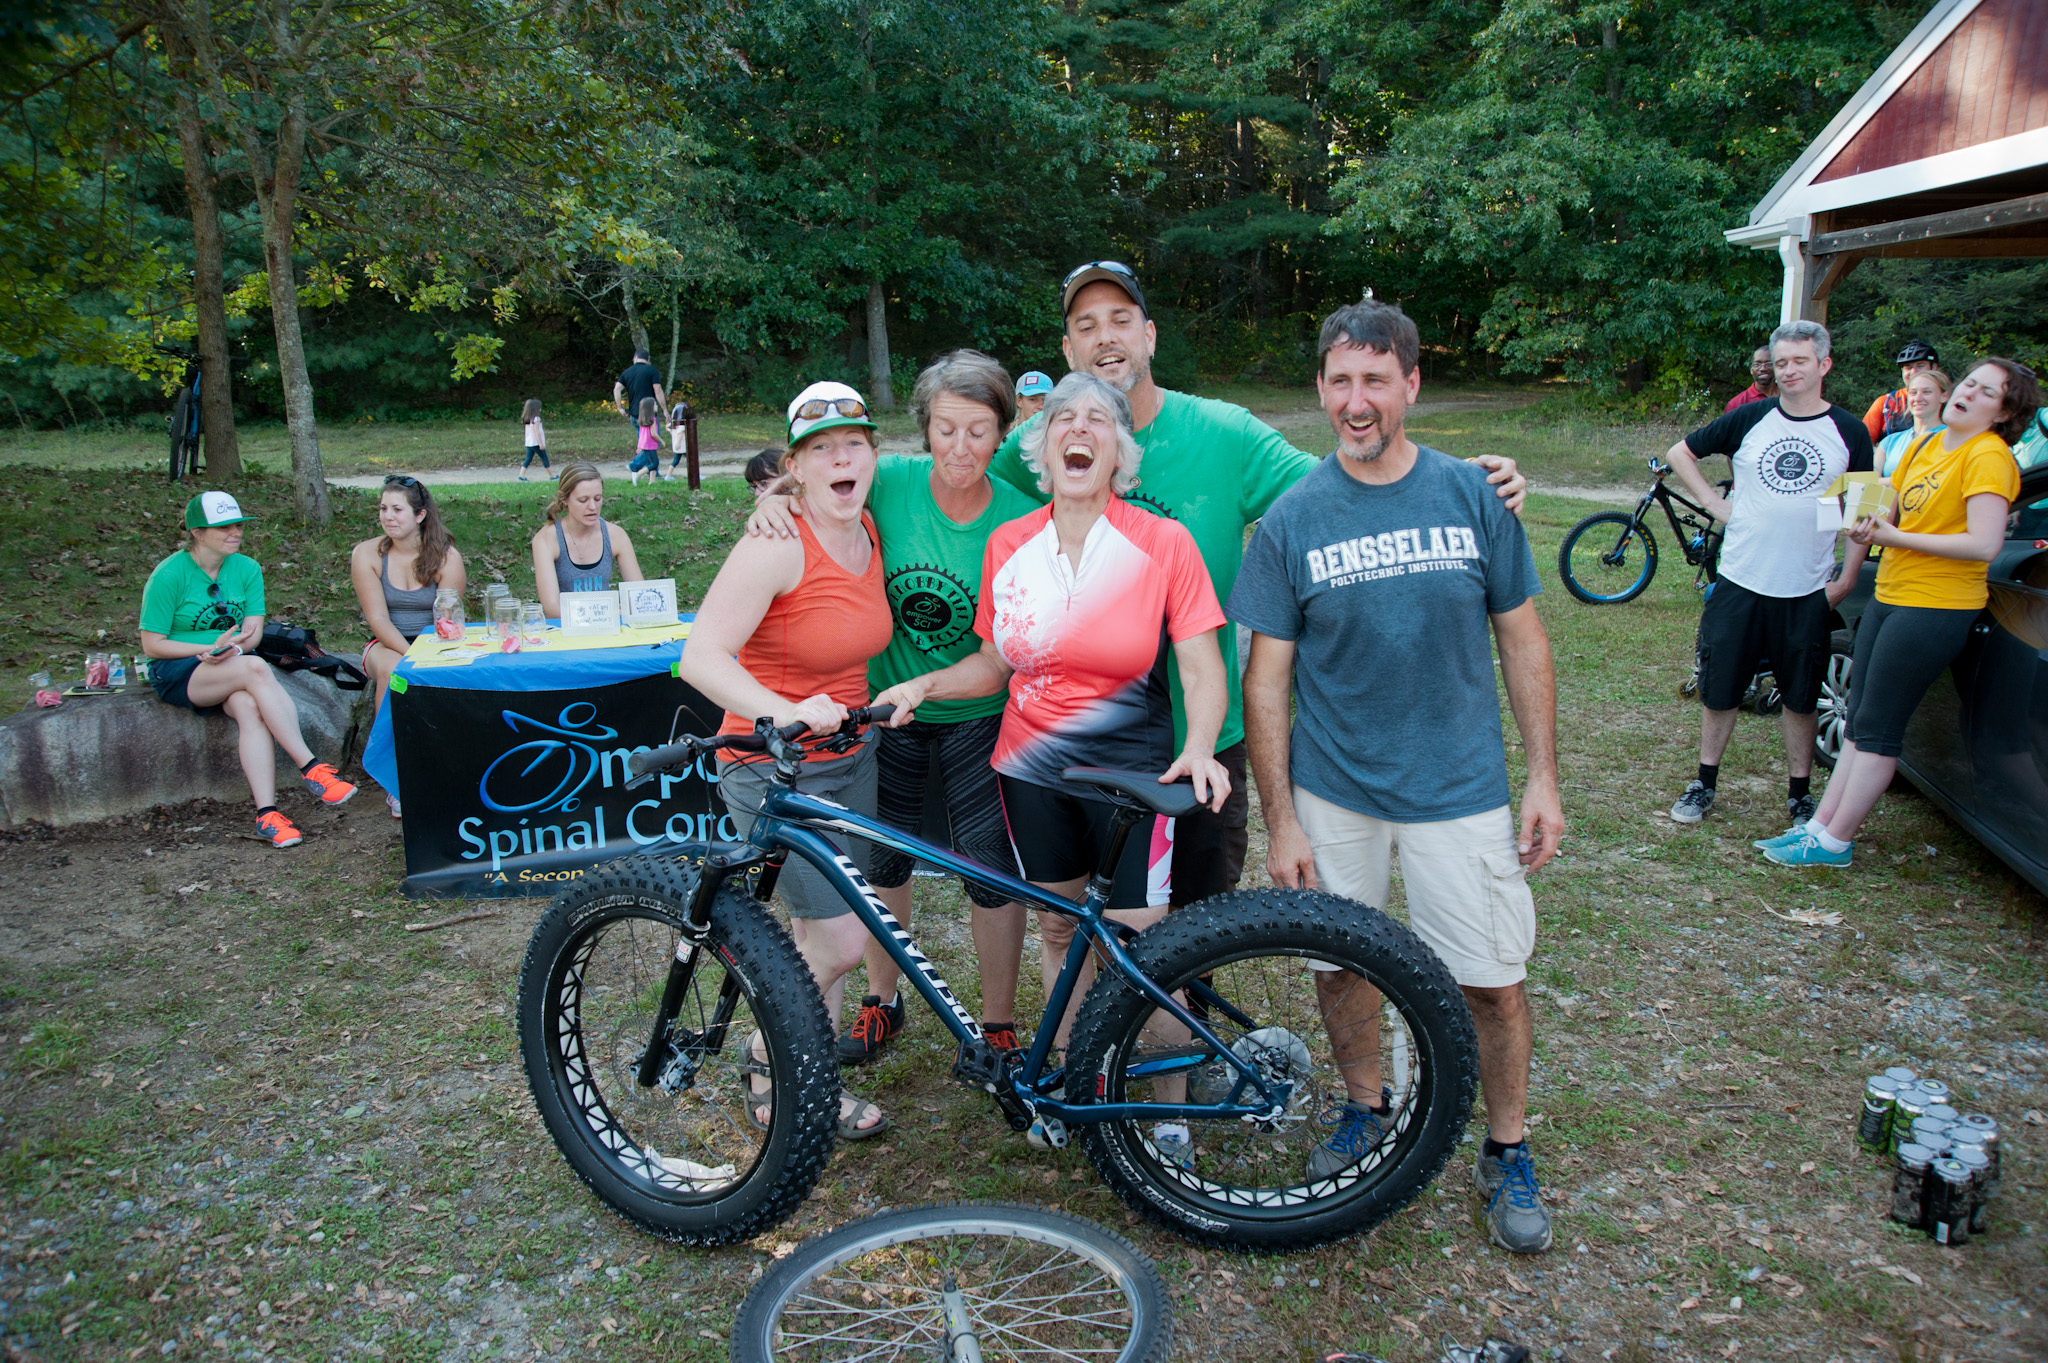 Big Winner, Faith ditching her old bike for her auction prize, a new Fat Bike!